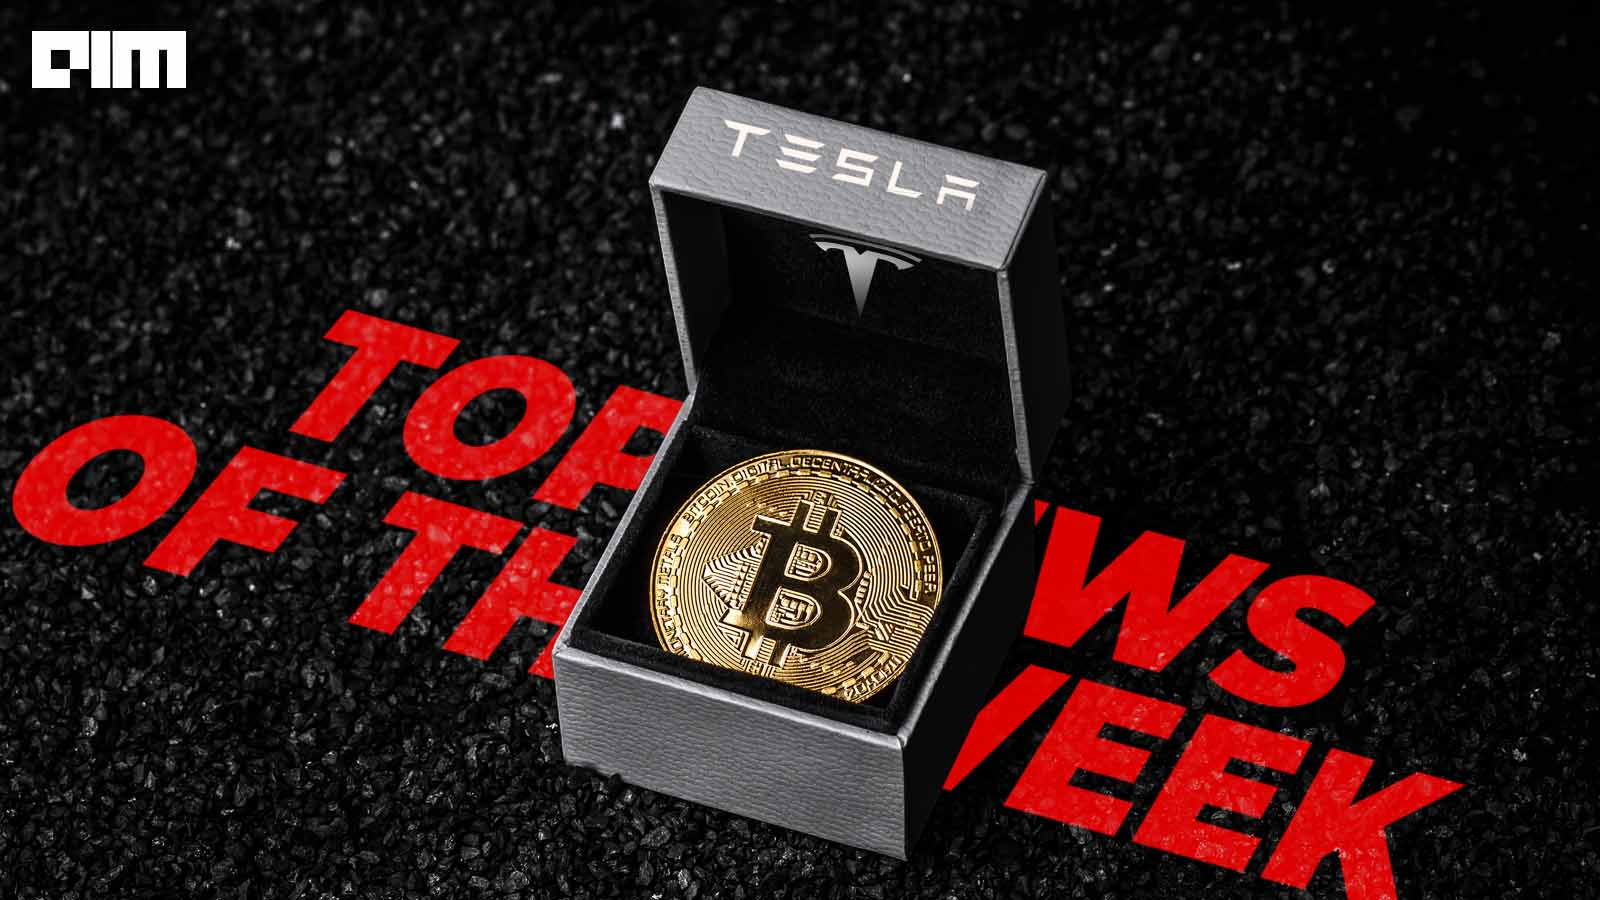 Tesla Embraces Bitcoin, AWS Gets A New CEO & More: Weekly Top News